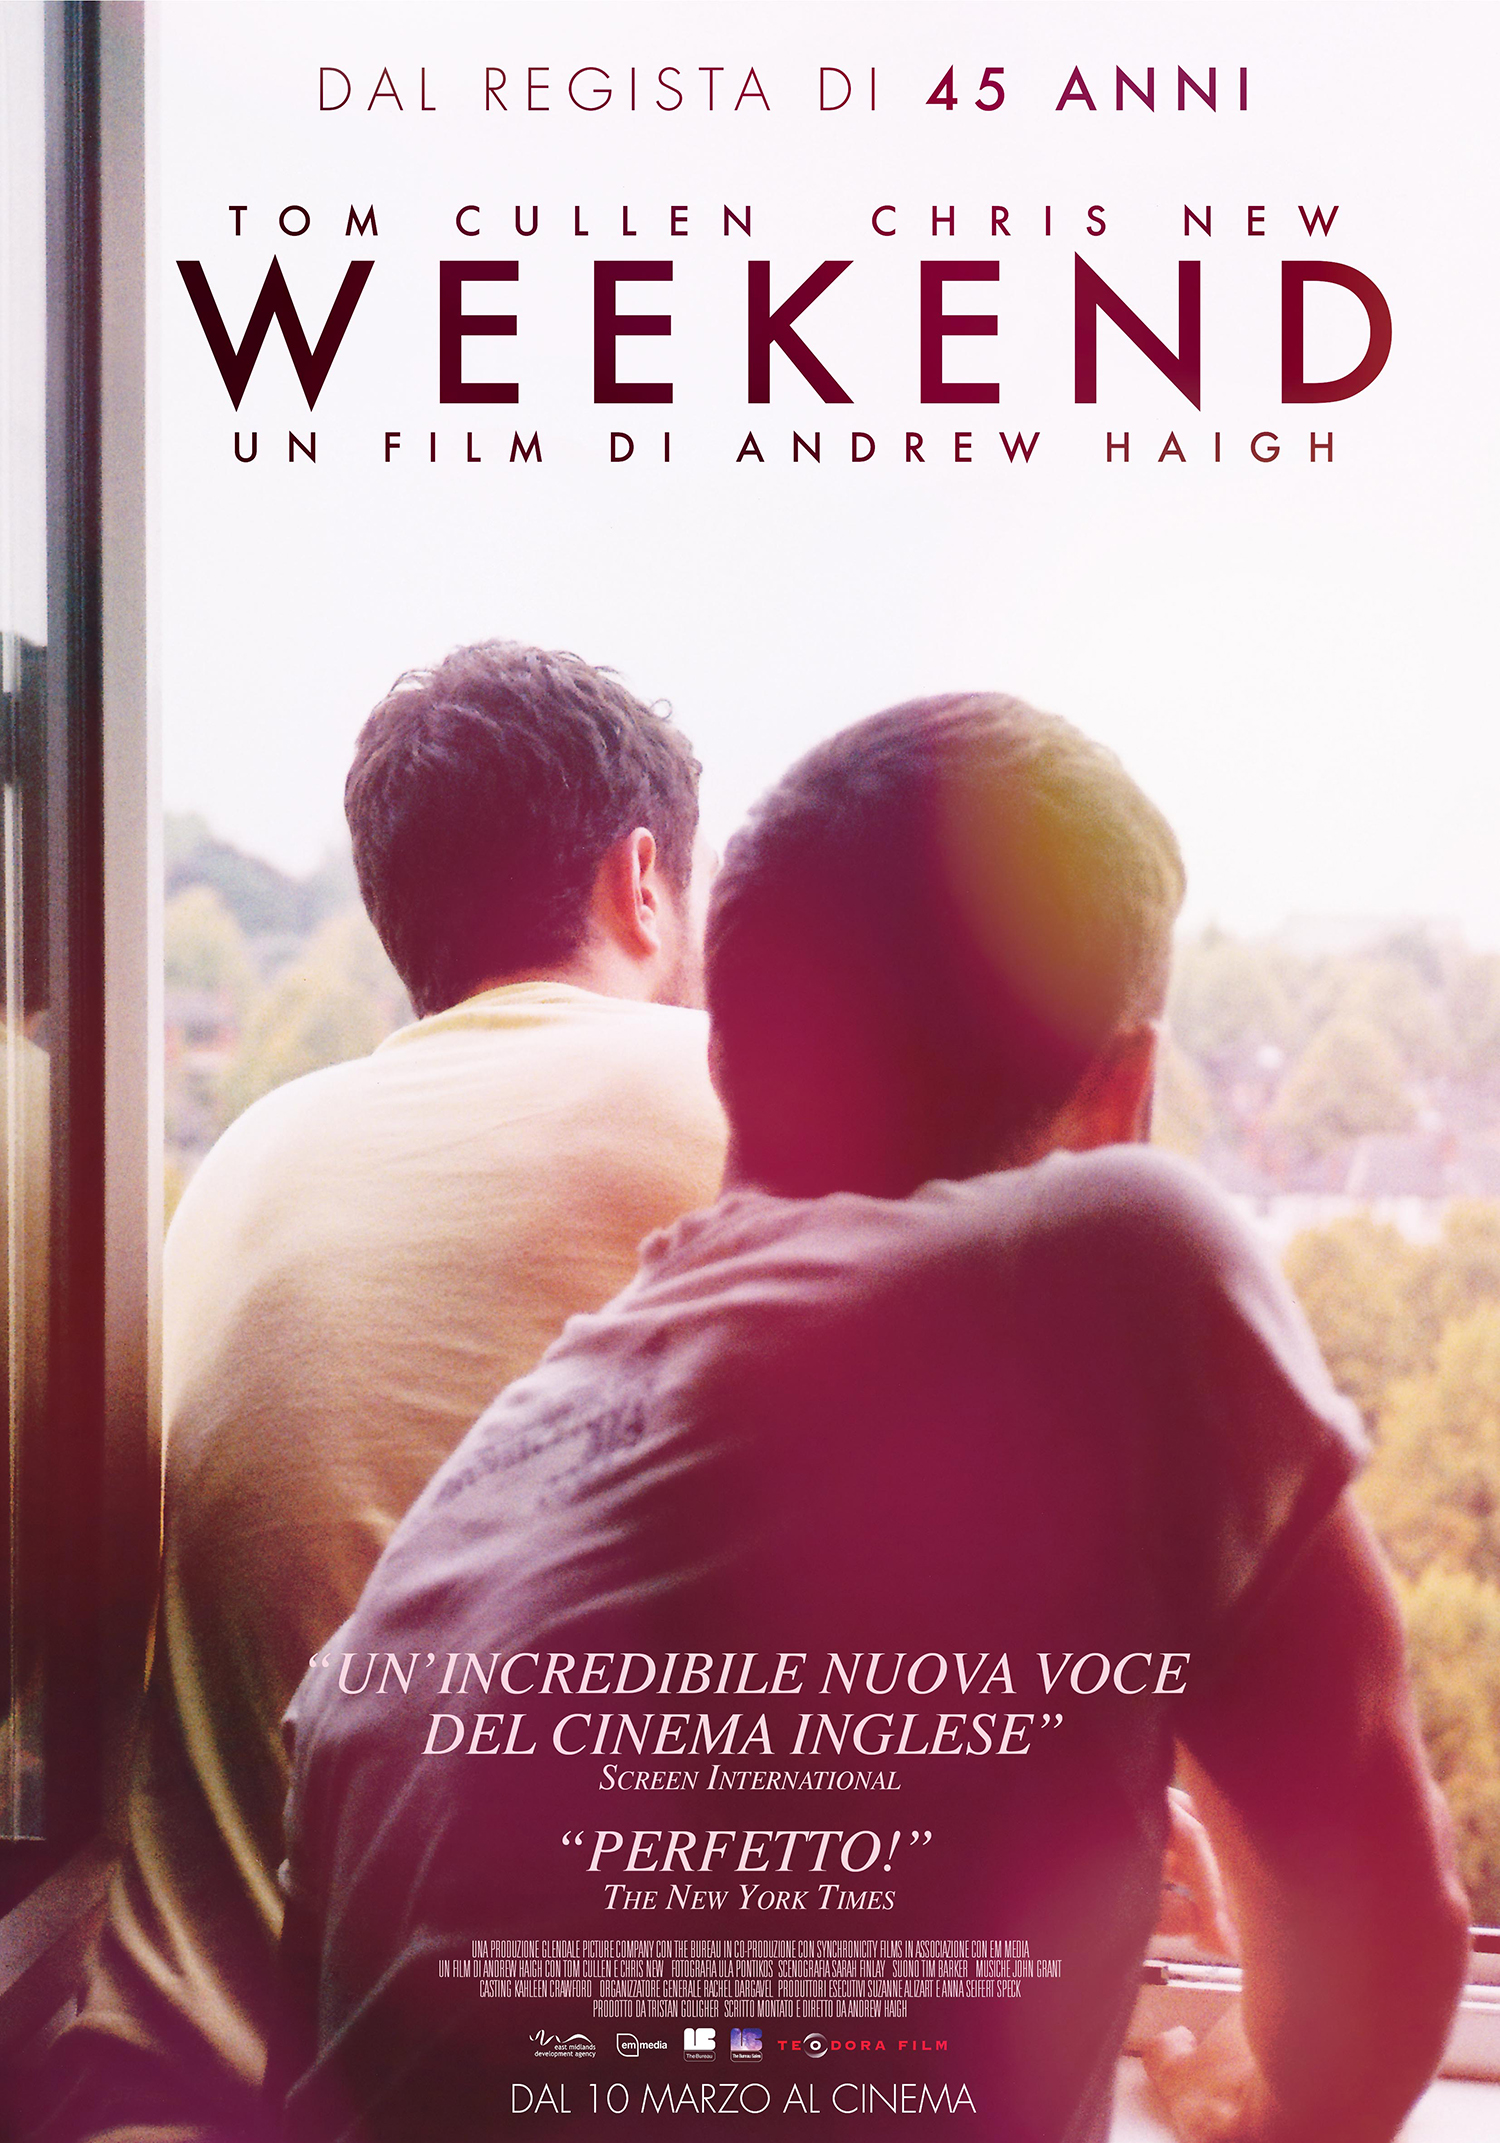 WEEKEND-poster-italiano2